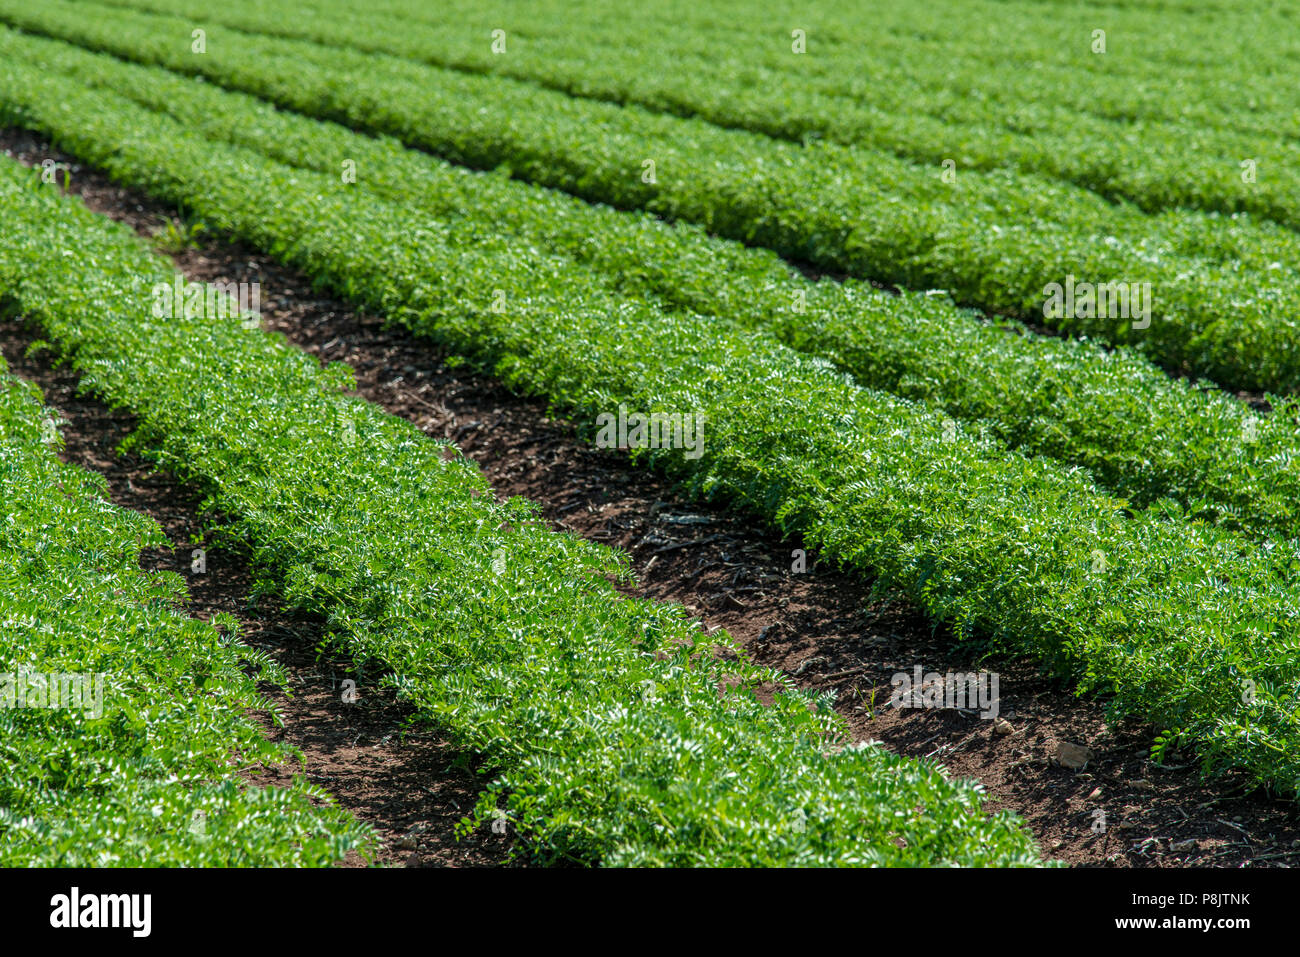 Rows of humus crops in a field - Stock Image